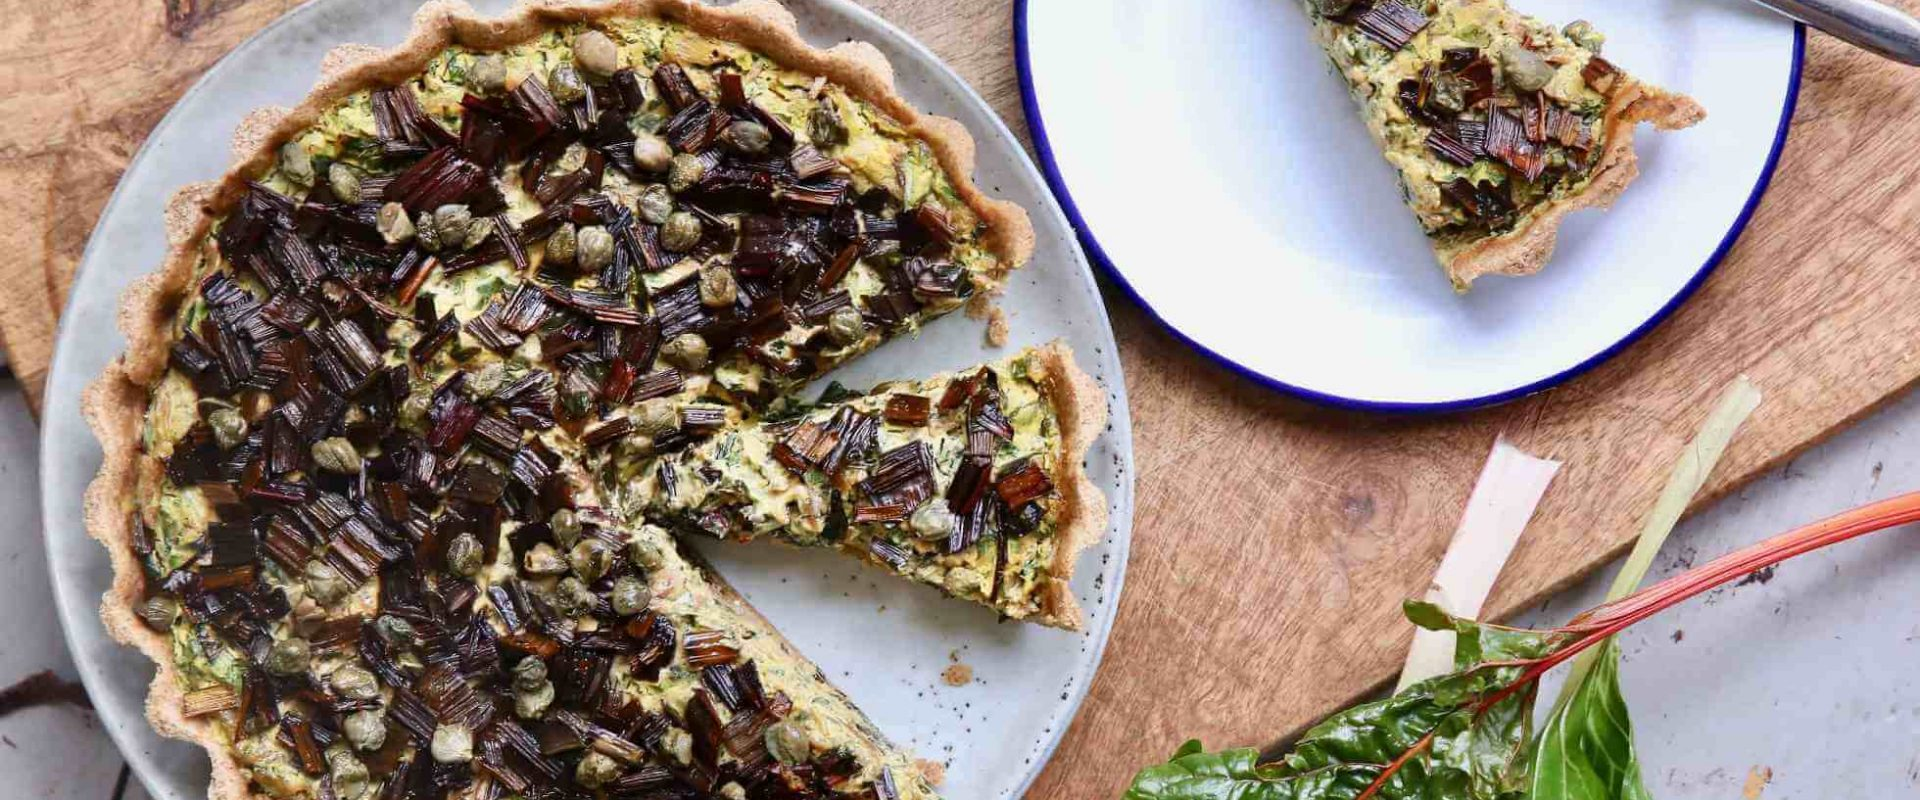 Vegan Chard and Caper Tart